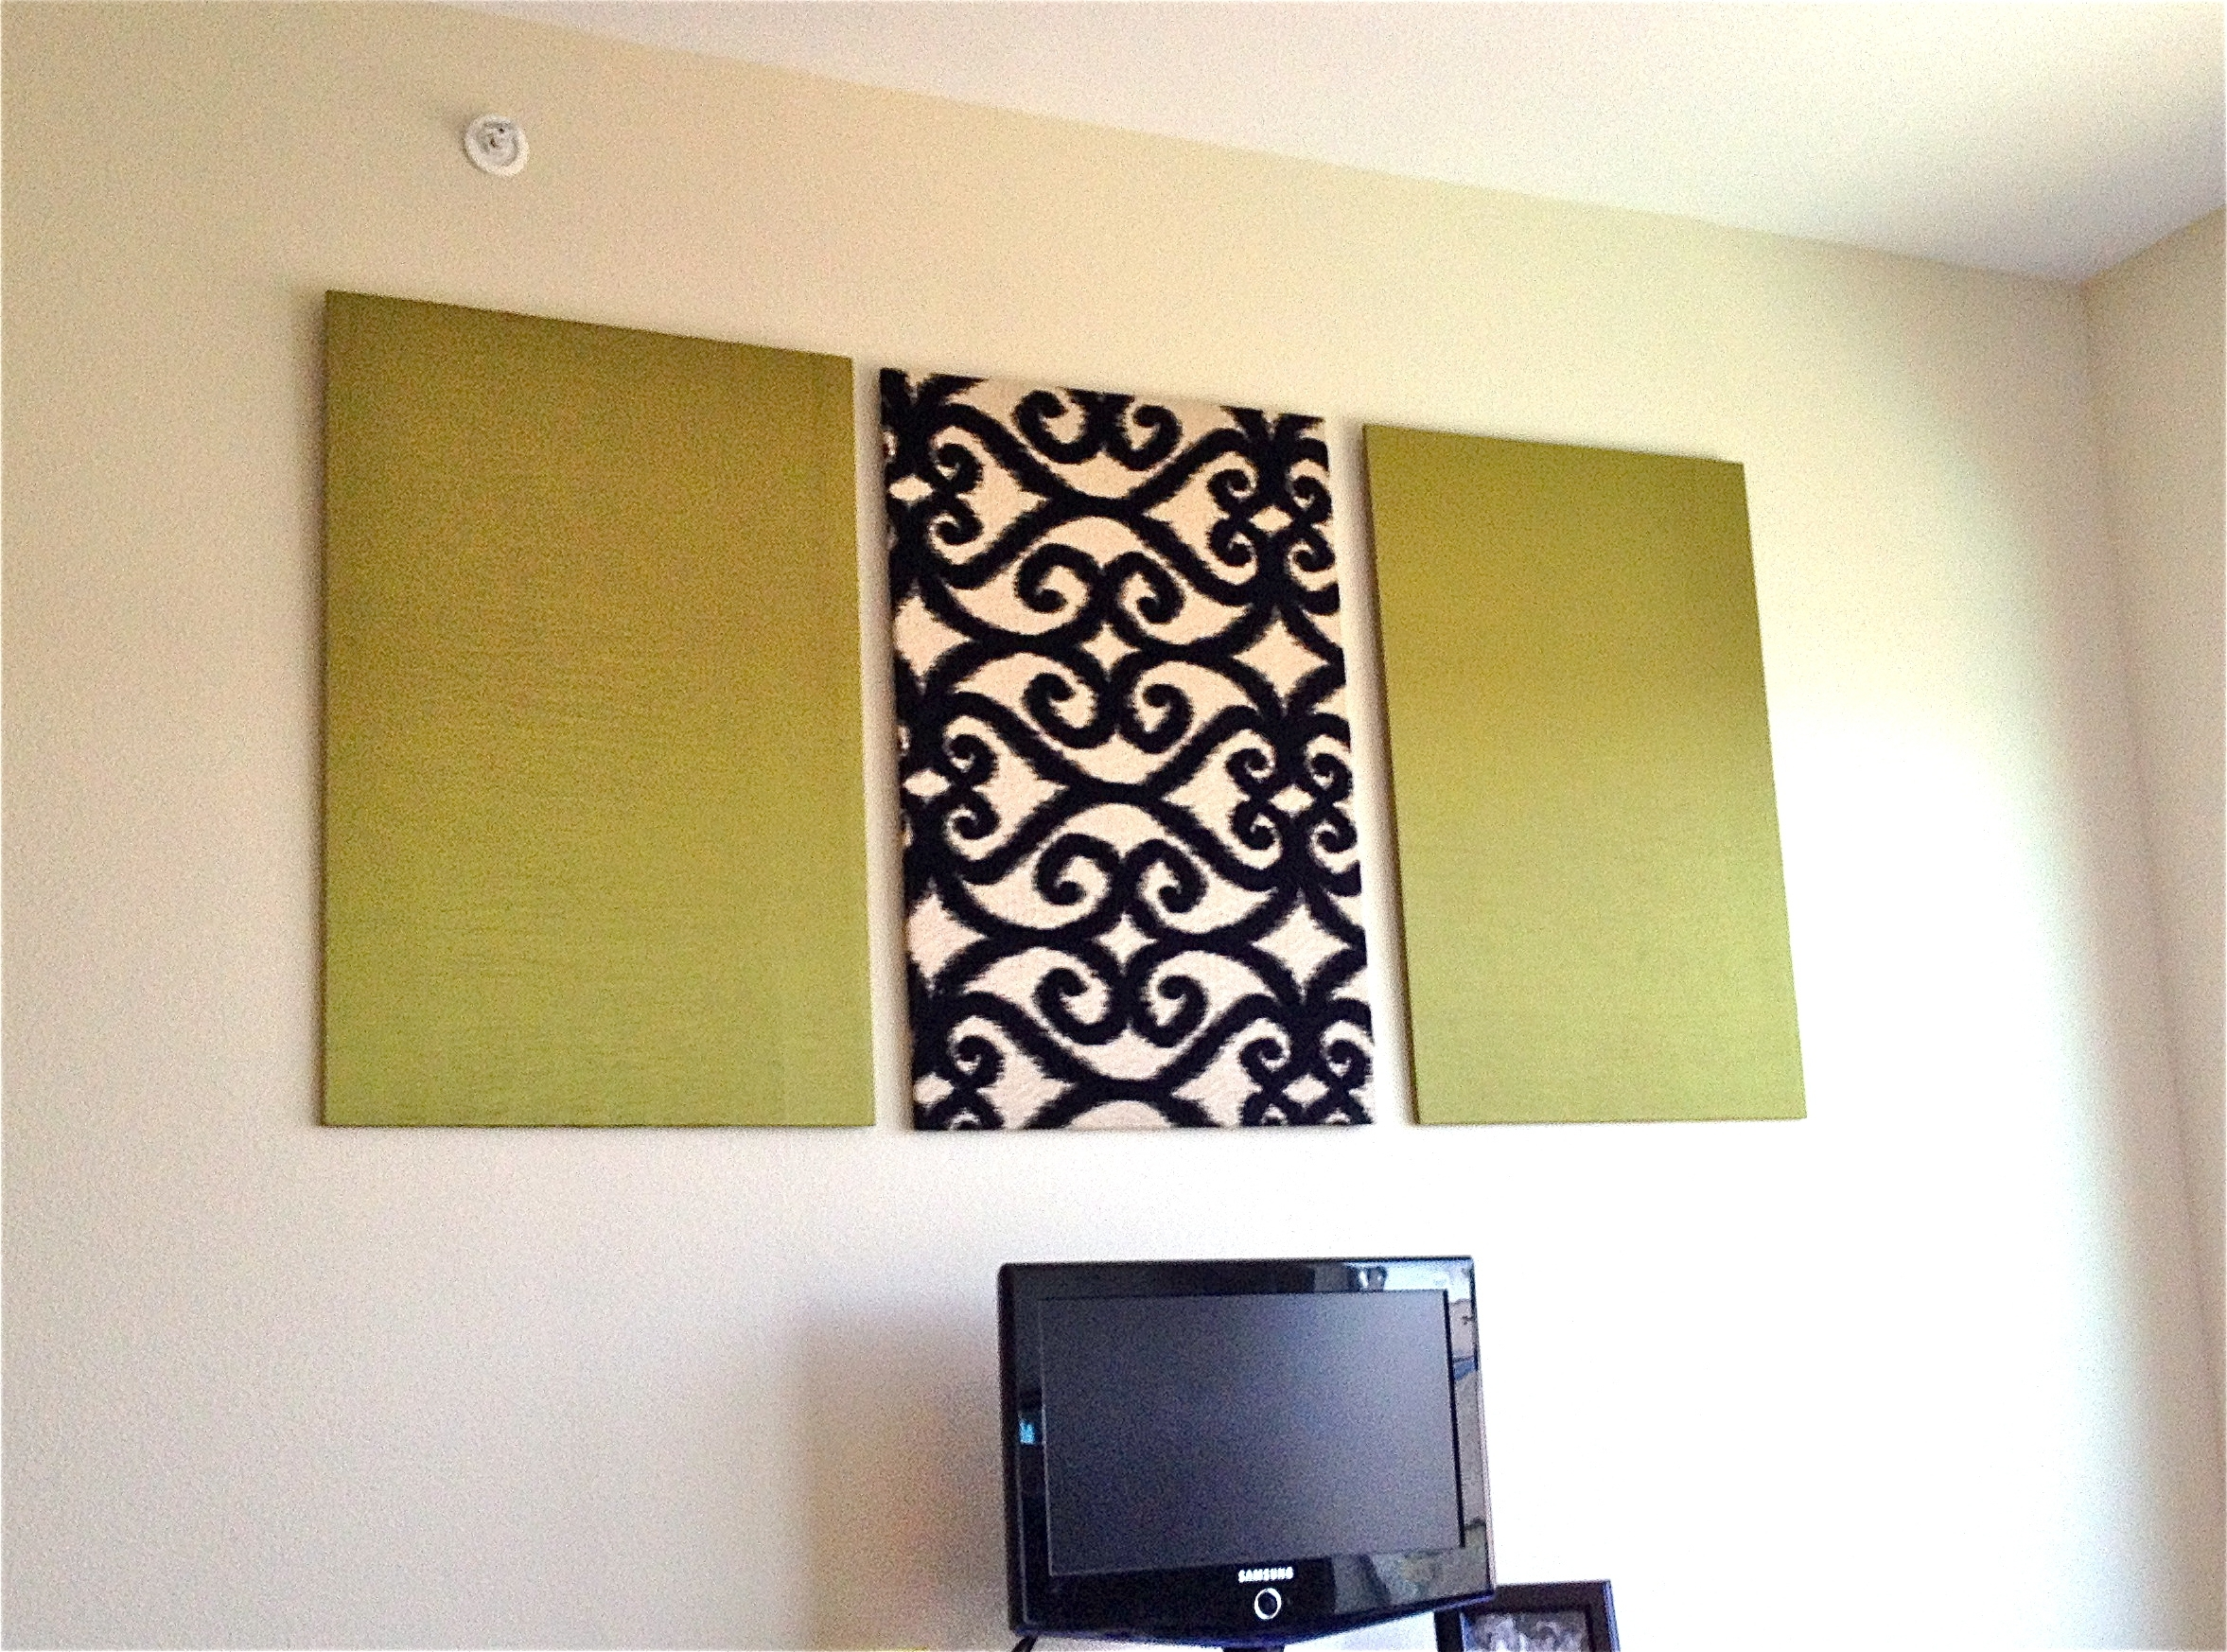 Diy Upholstered Wall Panels | Home Ideas | Pinterest | Upholstered With Most Up To Date Fabric For Wall Art Hangings (Gallery 5 of 15)